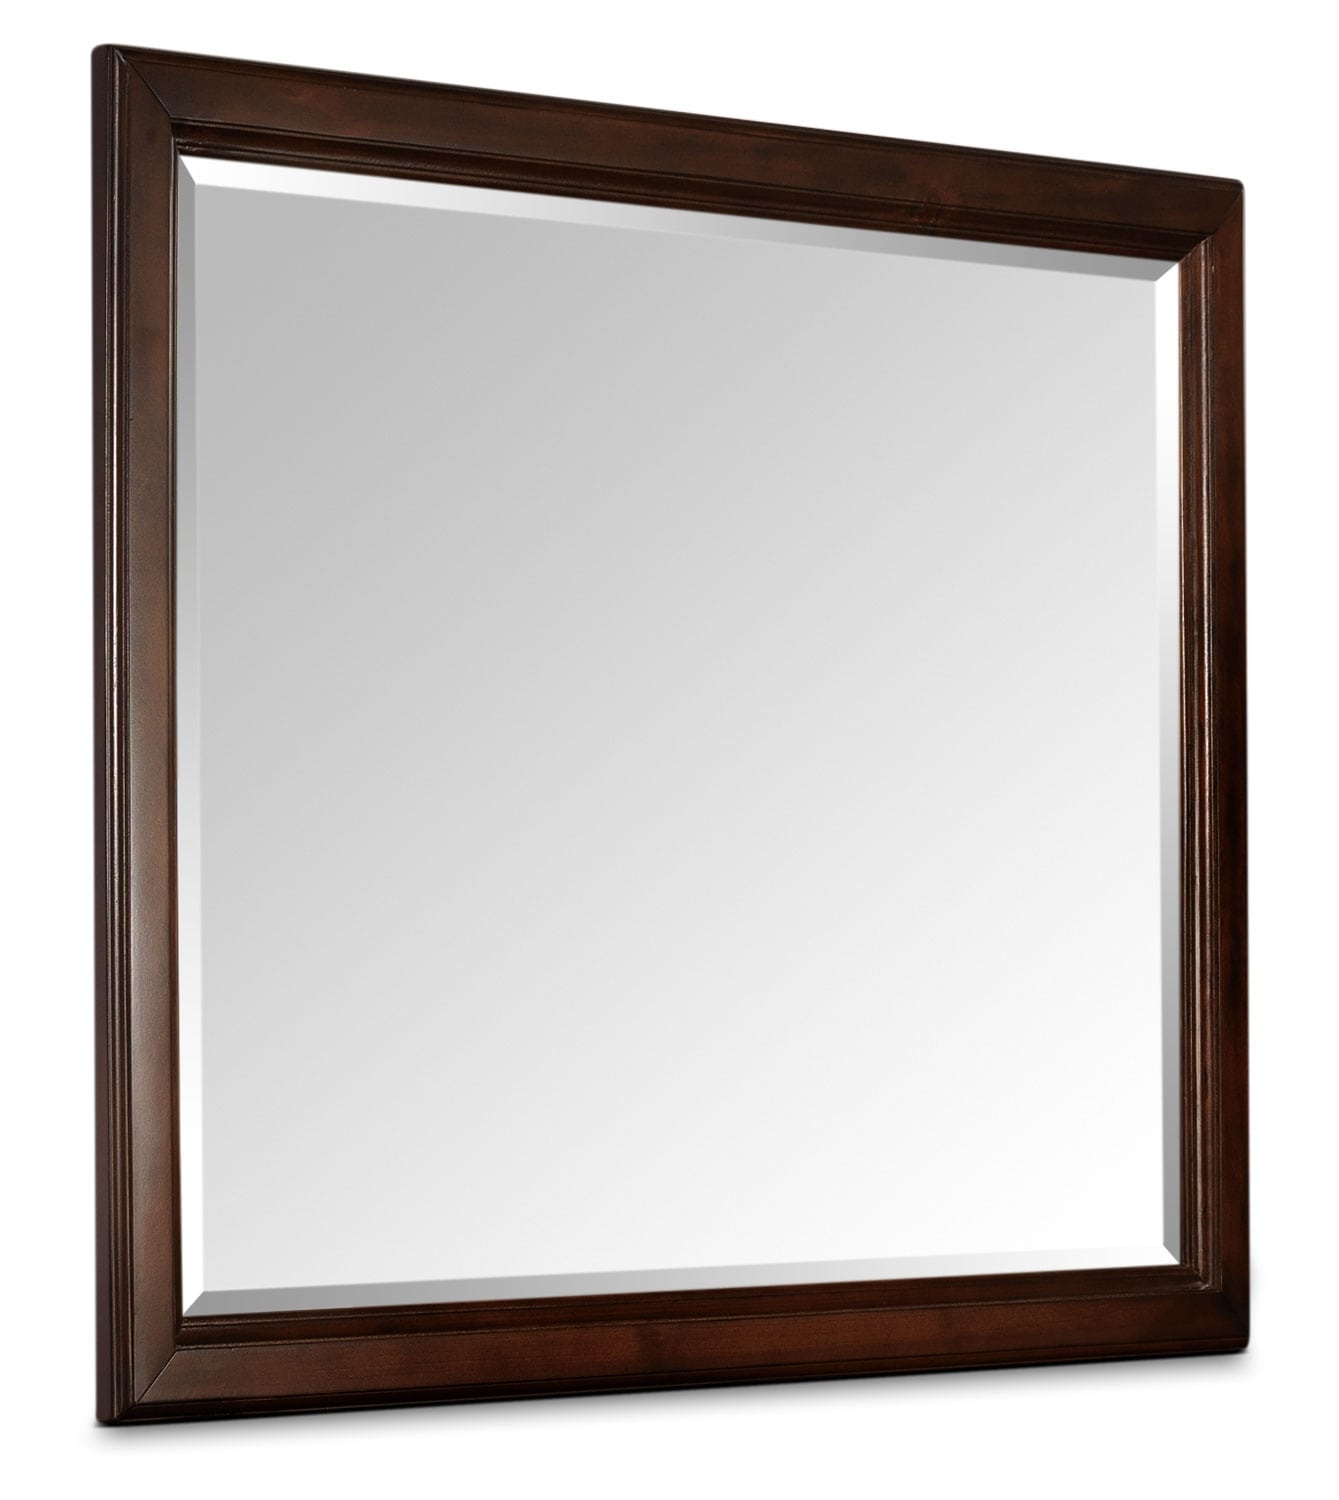 Bedroom Furniture - New Manhattan Mirror